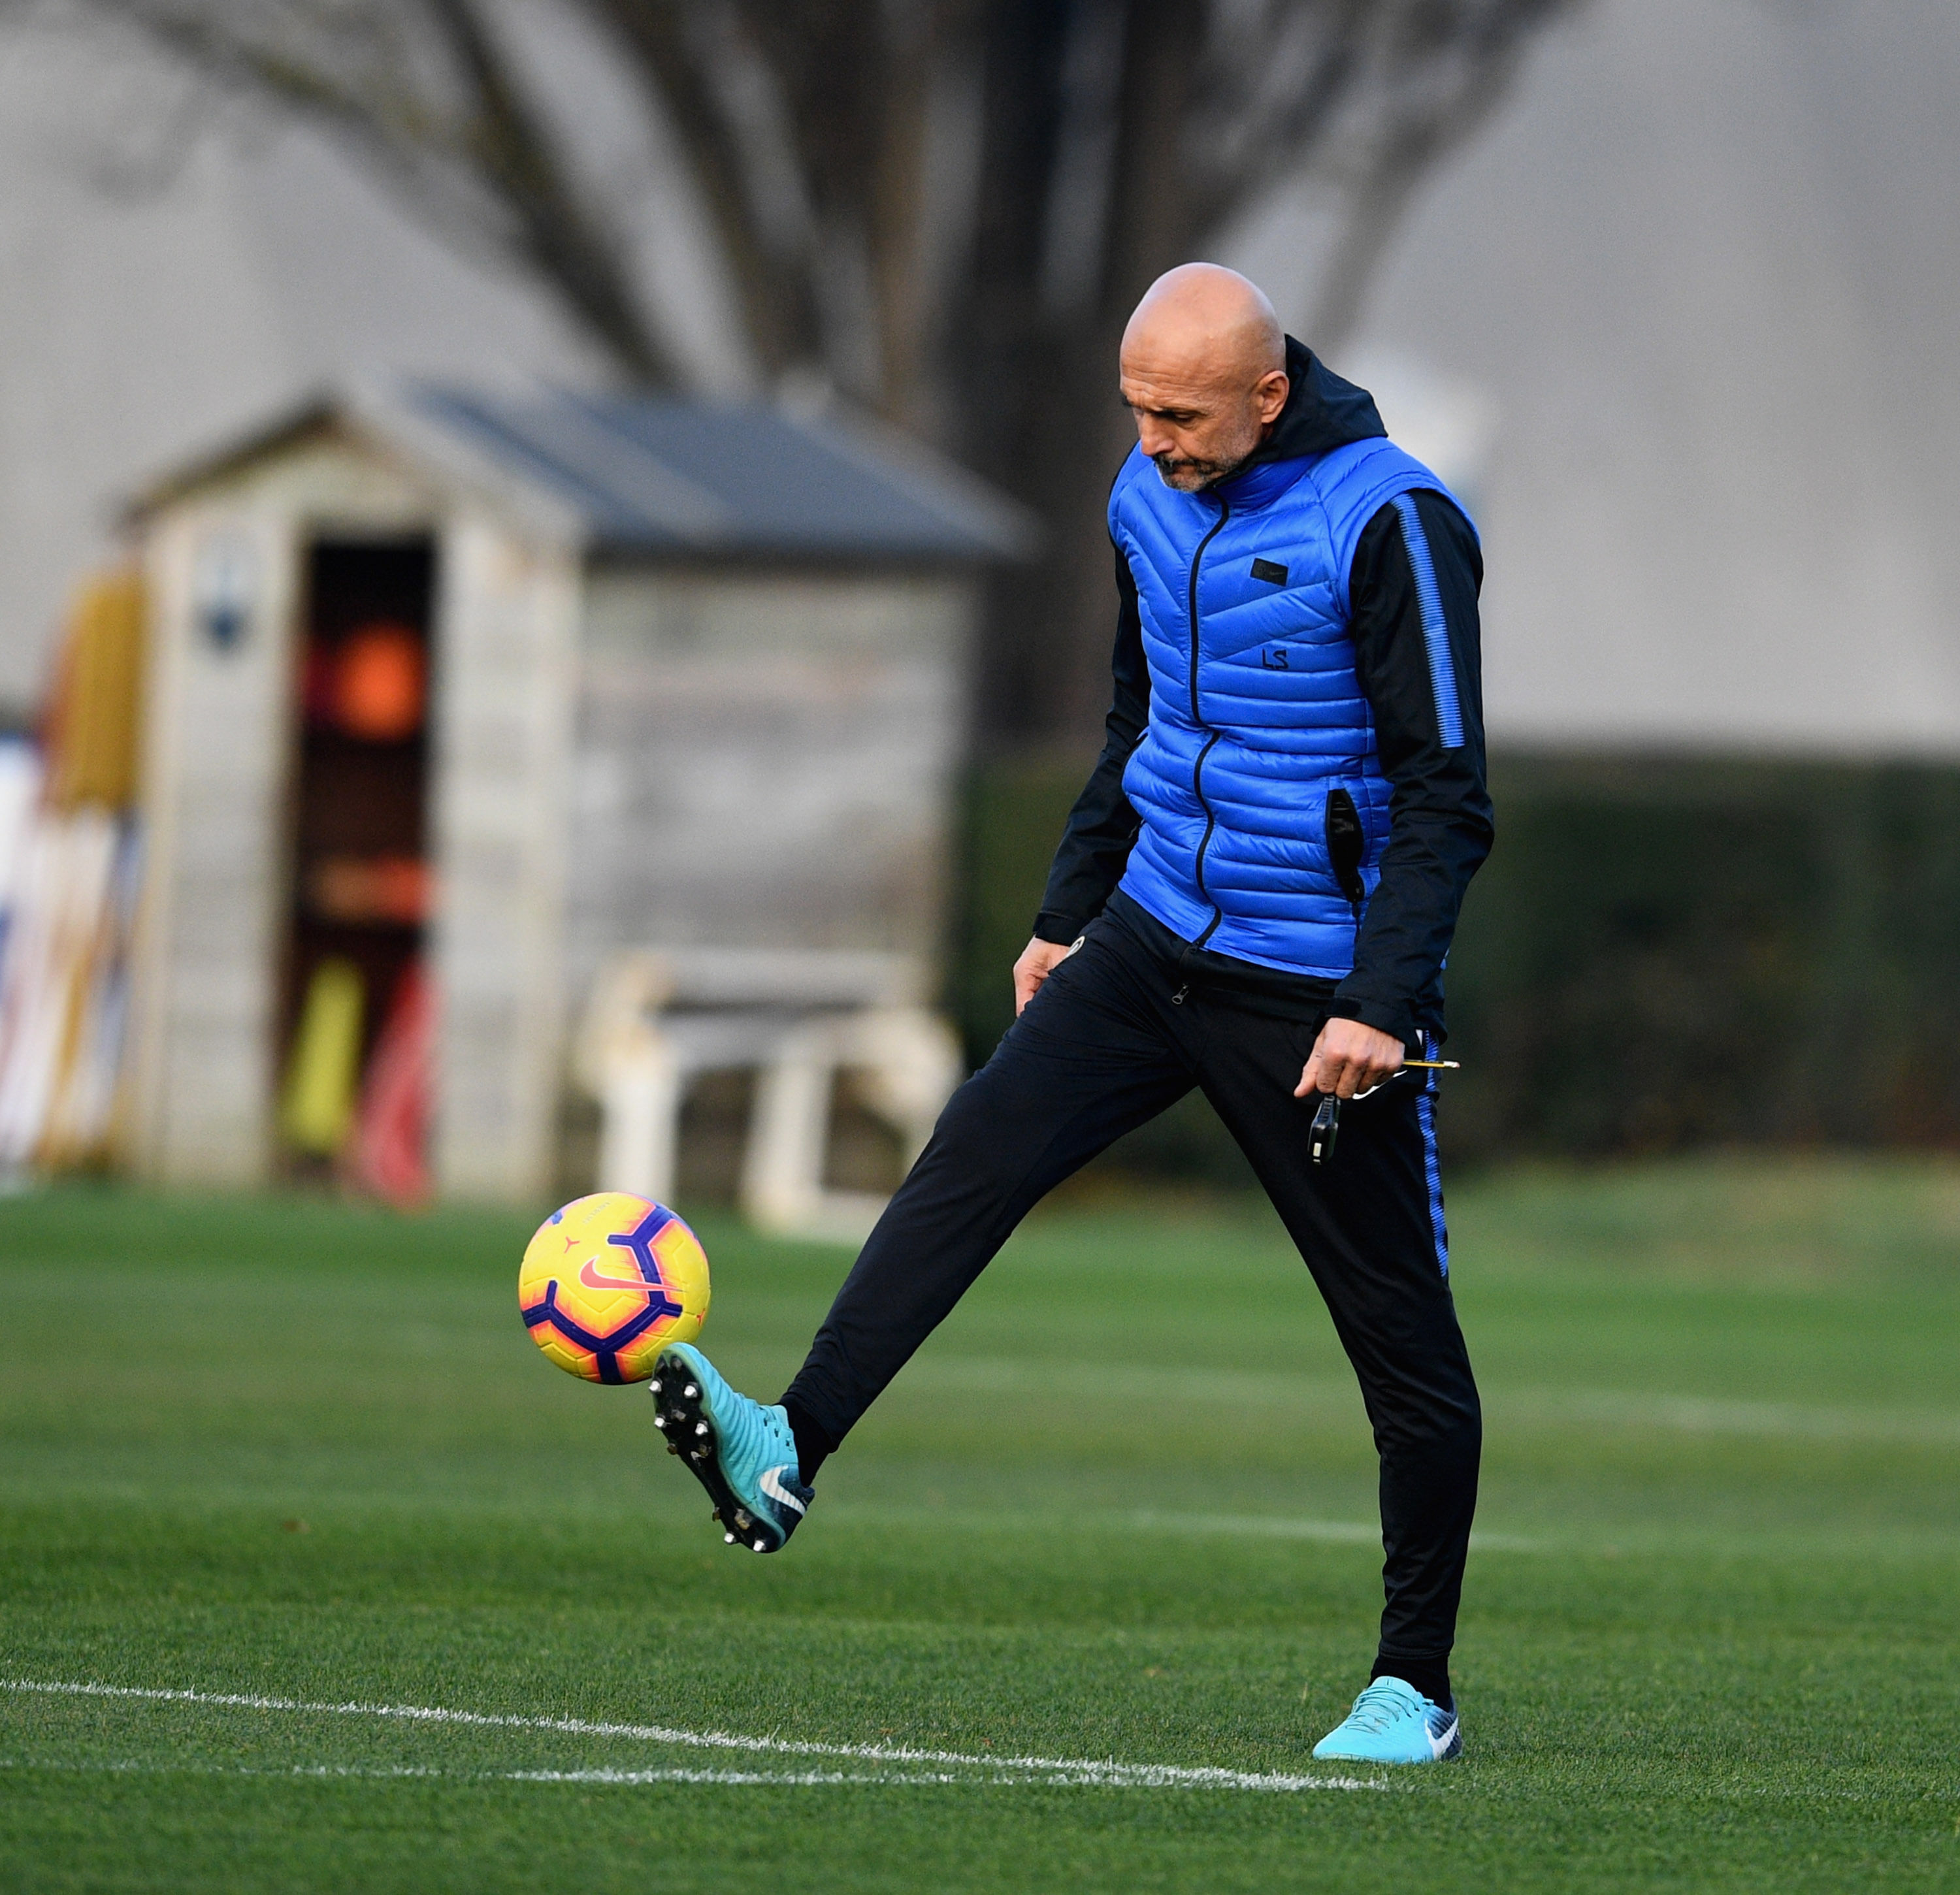 Photos from the session a day ahead of Juventus vs. Inter